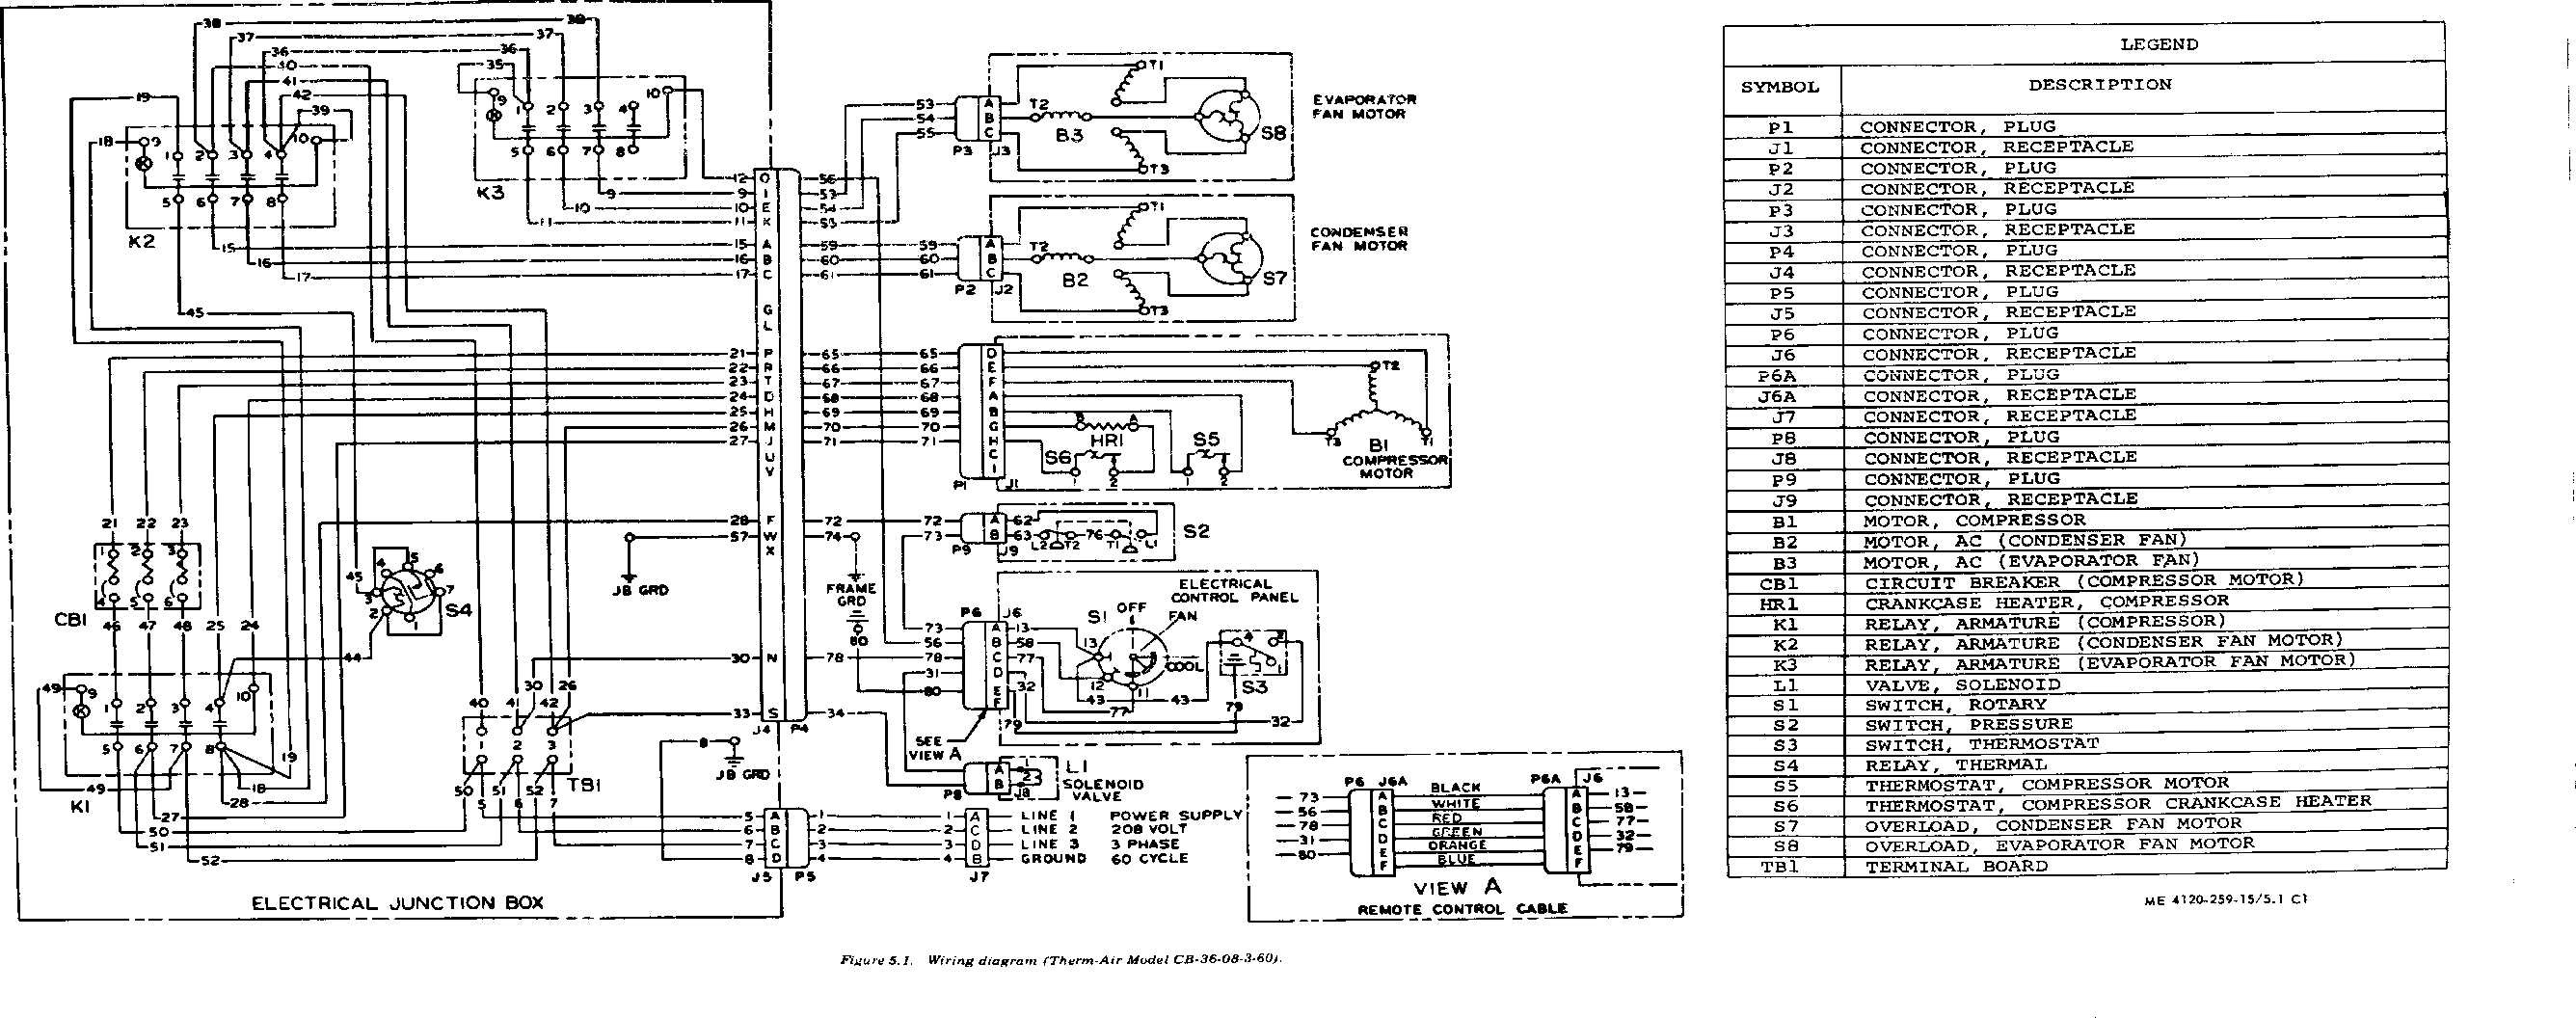 Trane Heat Pump Wiring Diagram Thermostat from mainetreasurechest.com